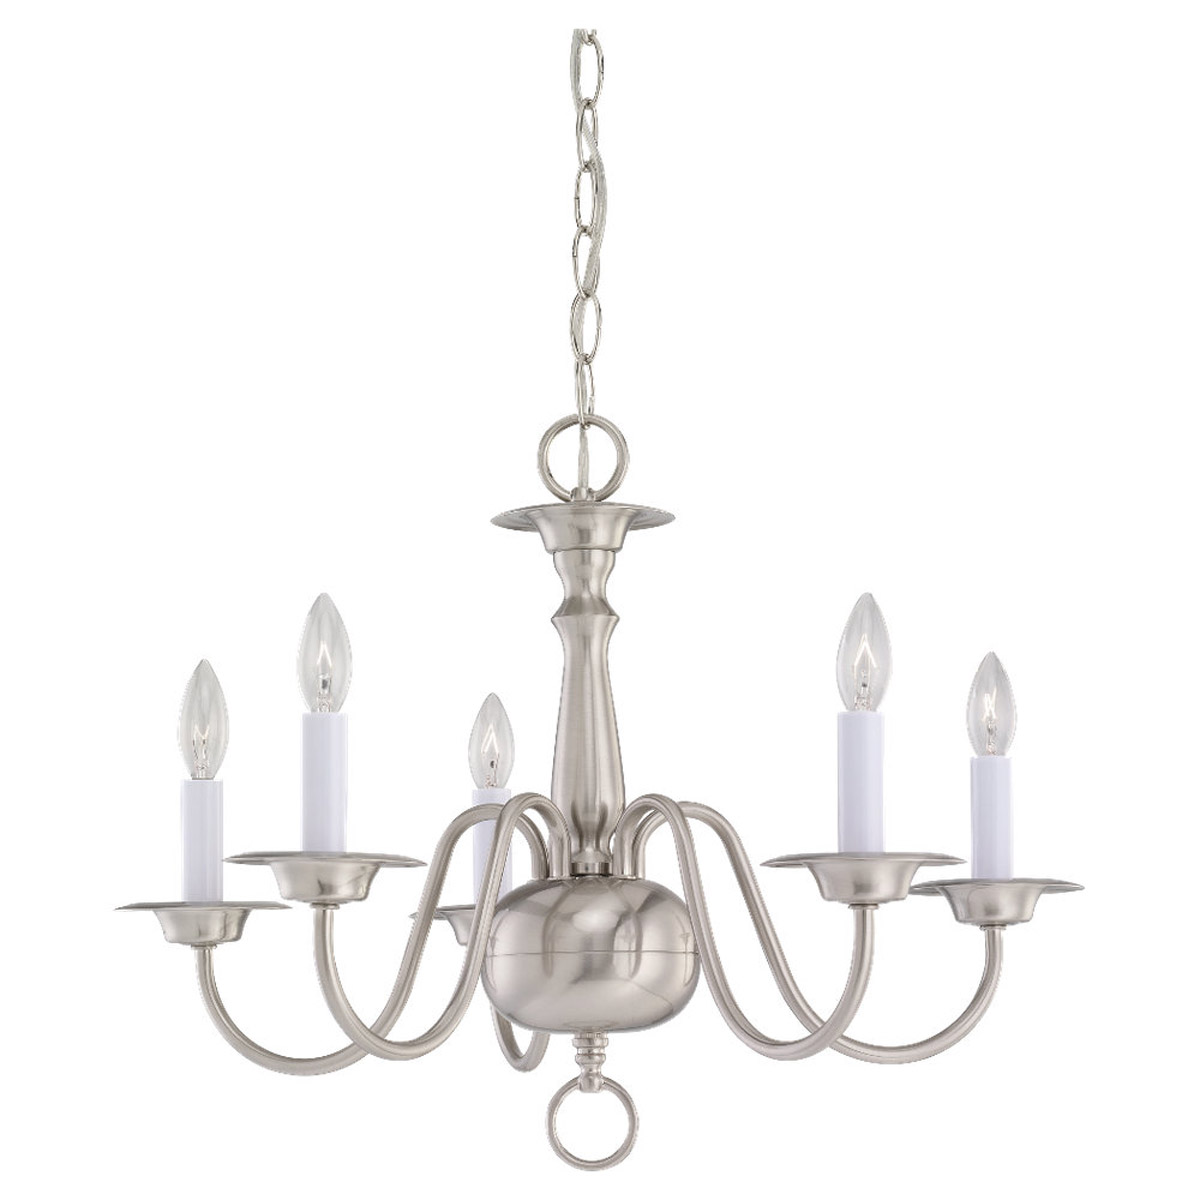 Sea Gull Lighting Traditional 5 Light Chandelier in Brushed Nickel 3313-962